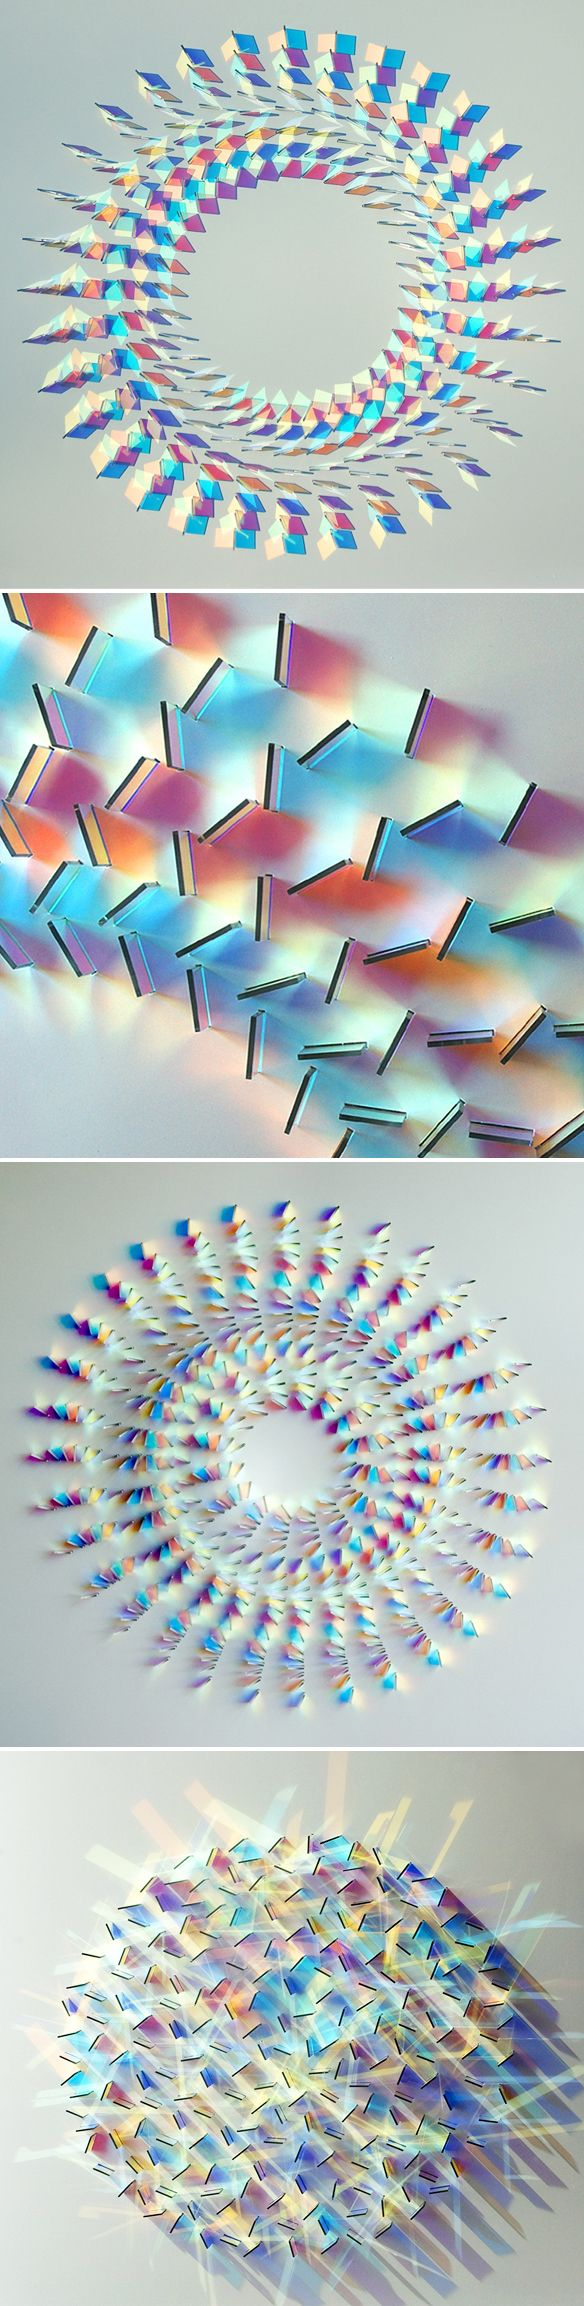 Glass wall installations by Chris Wood :: very cool the way the light hits it